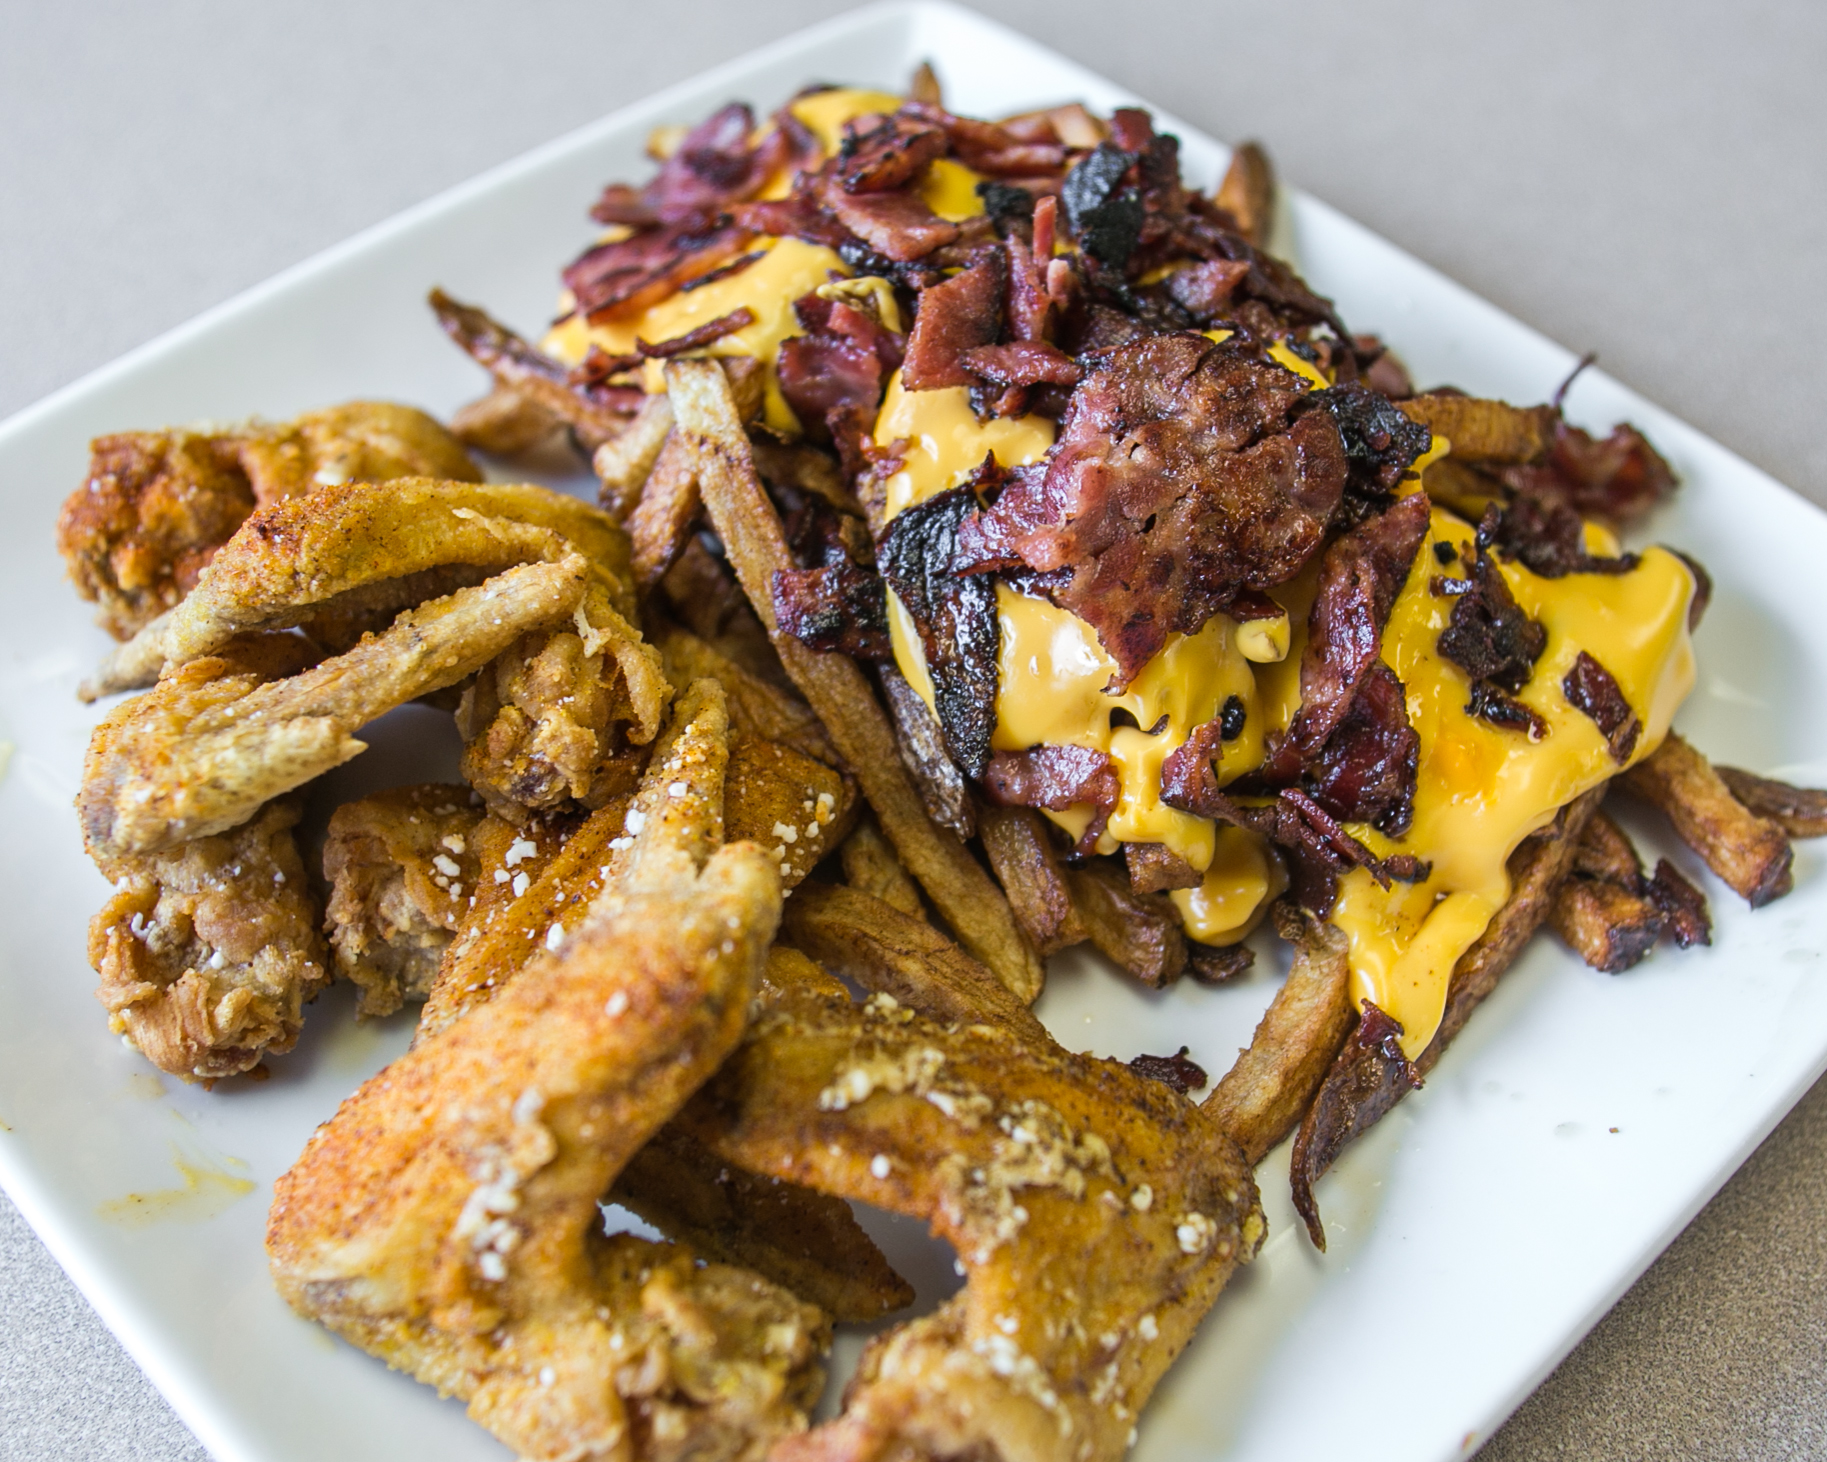 Shuman's Homewood_Fried Chicken Wings with Beef Bacon Cheese Fries_native_-3.jpg